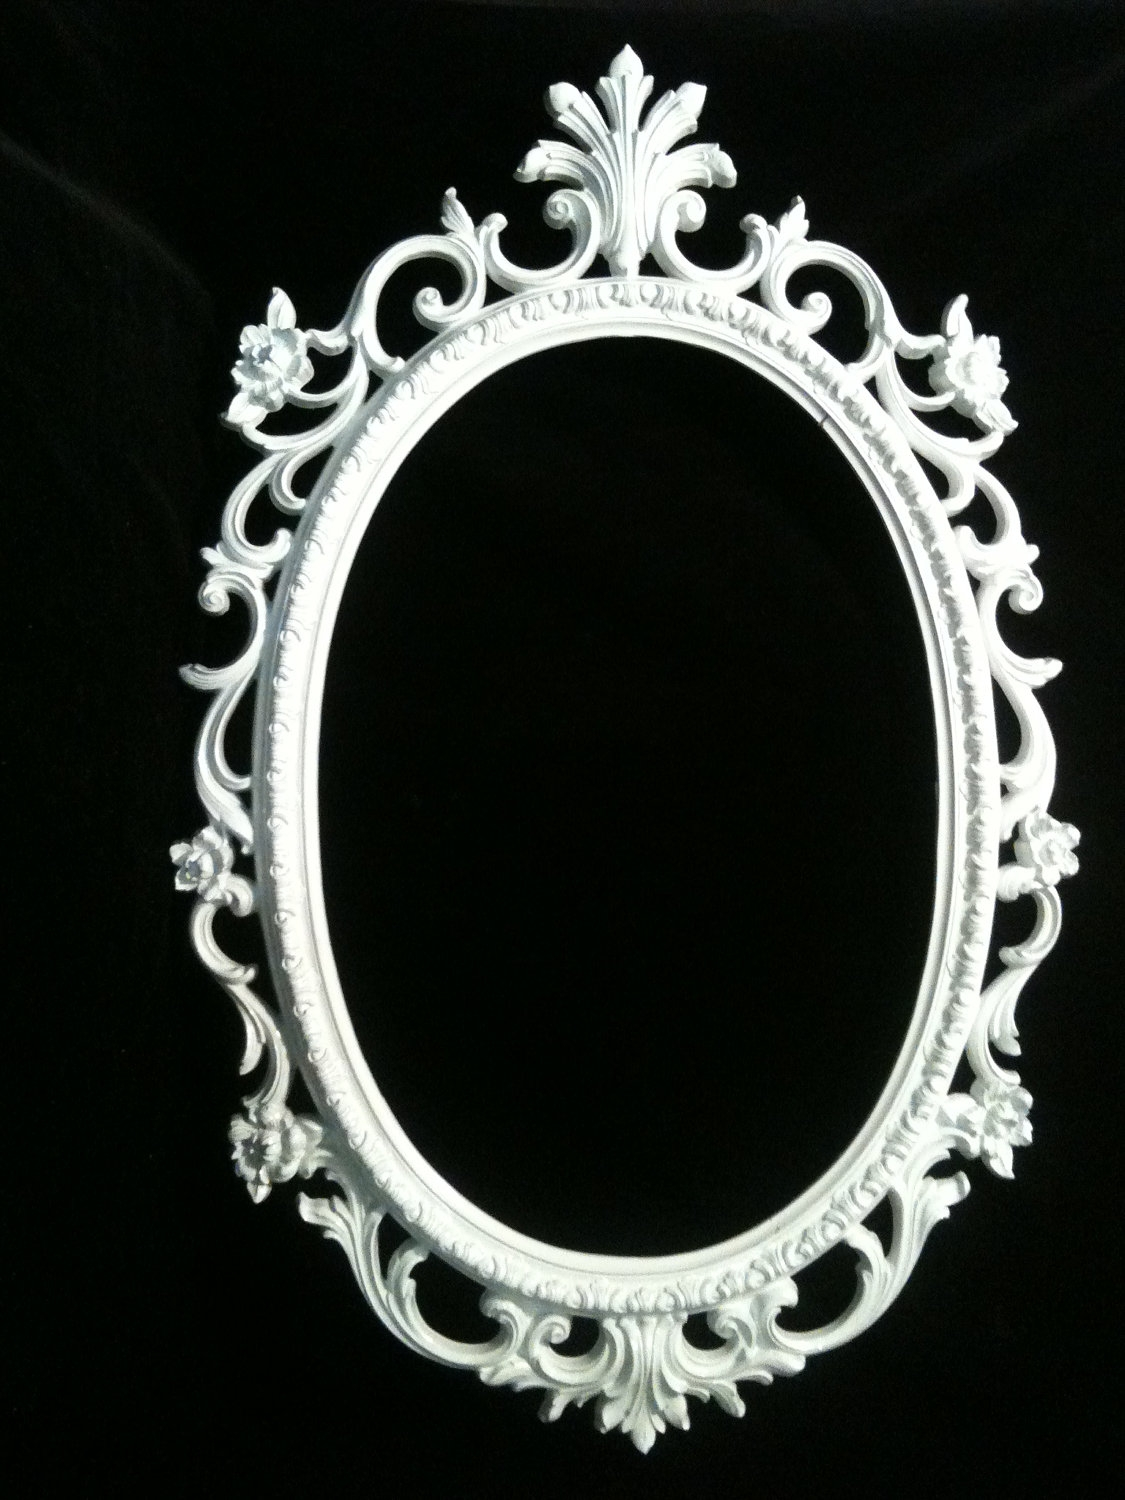 Gloss White Oval Picture Frame Mirror Shab Chic Baroque Gothic In Cheap Baroque Mirror (Image 7 of 15)